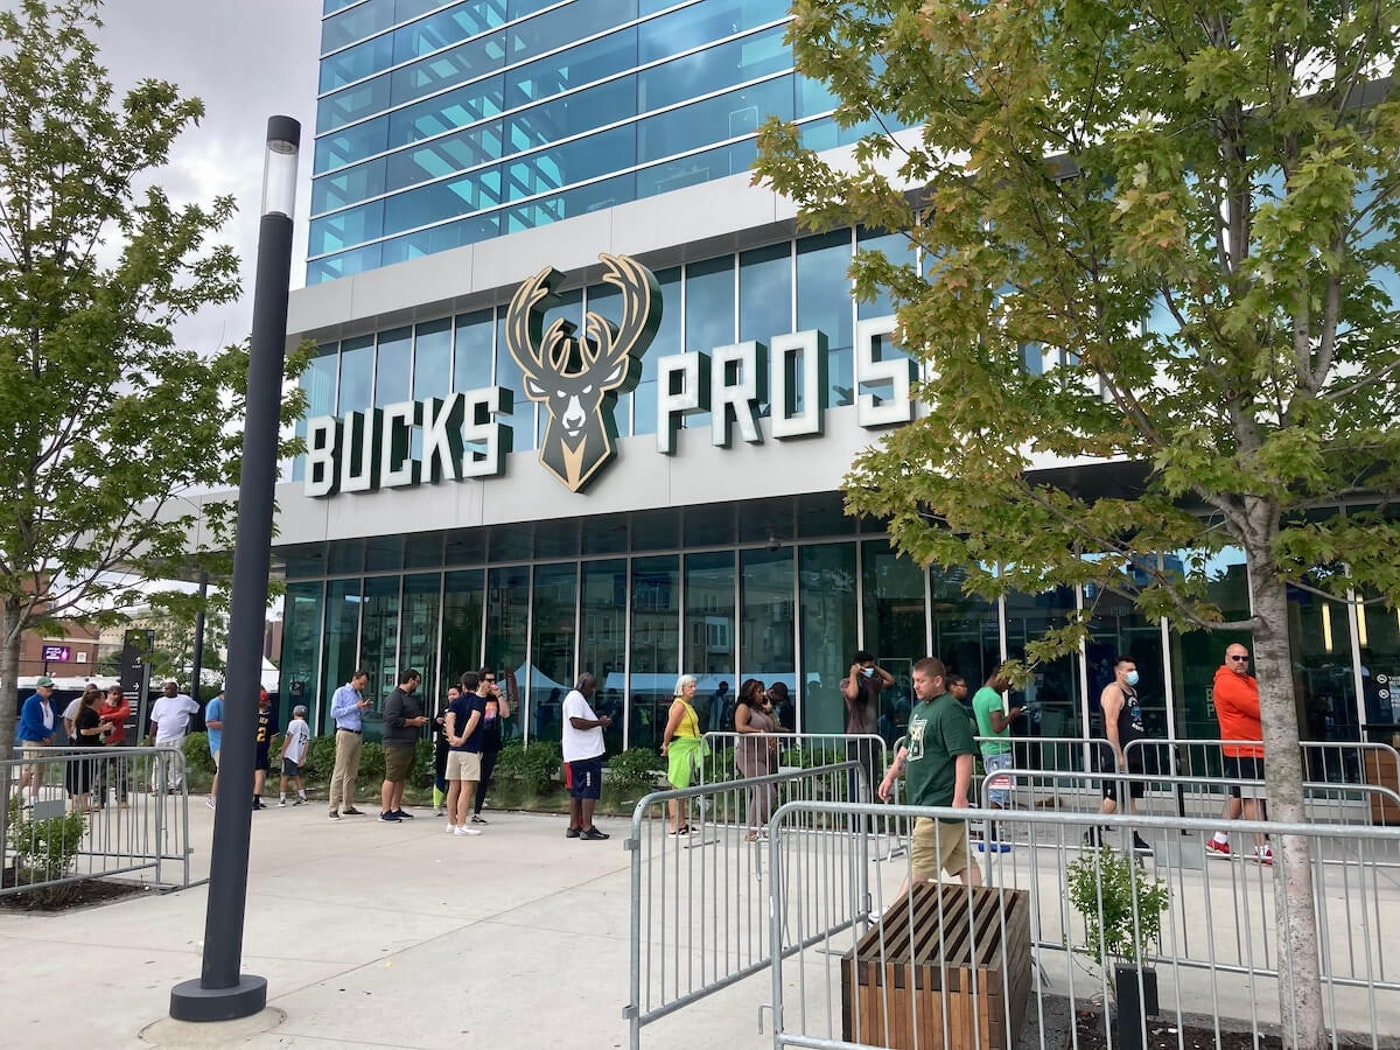 Hours after the Milwaukee Bucks won the NBA Finals, fans lined up outside the Bucks Pro Shop in the Deer District to get championship merchandise. (Photo by Olivia Stern)